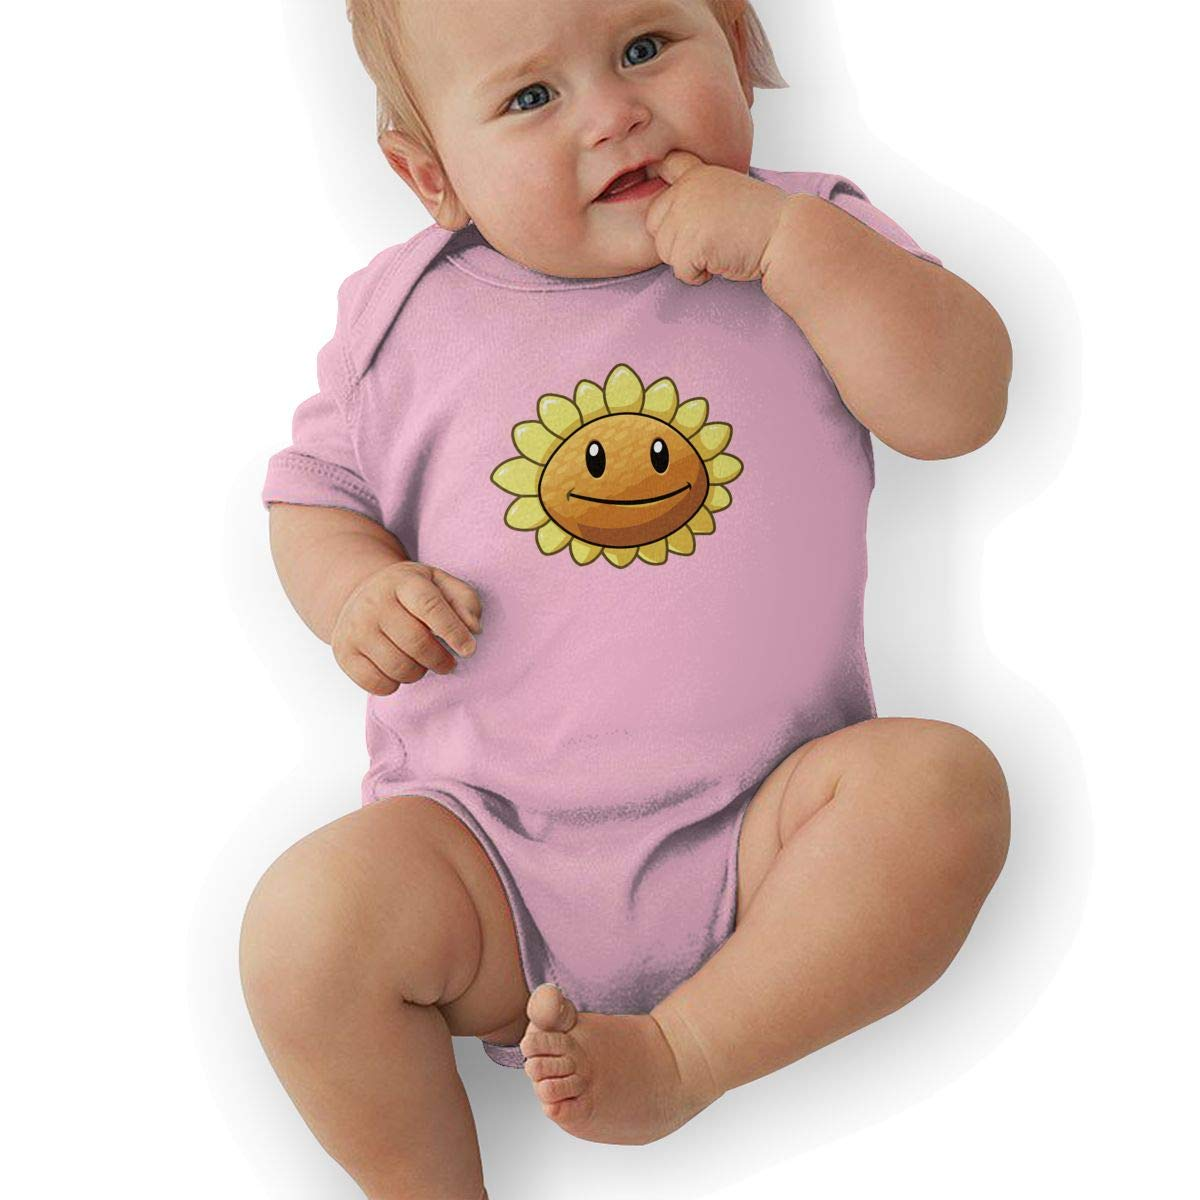 QUCHEN Sunflower Logo Baby Boys Girls Long Sleeve Bodysuits Rompers Outfits 6-48 Months